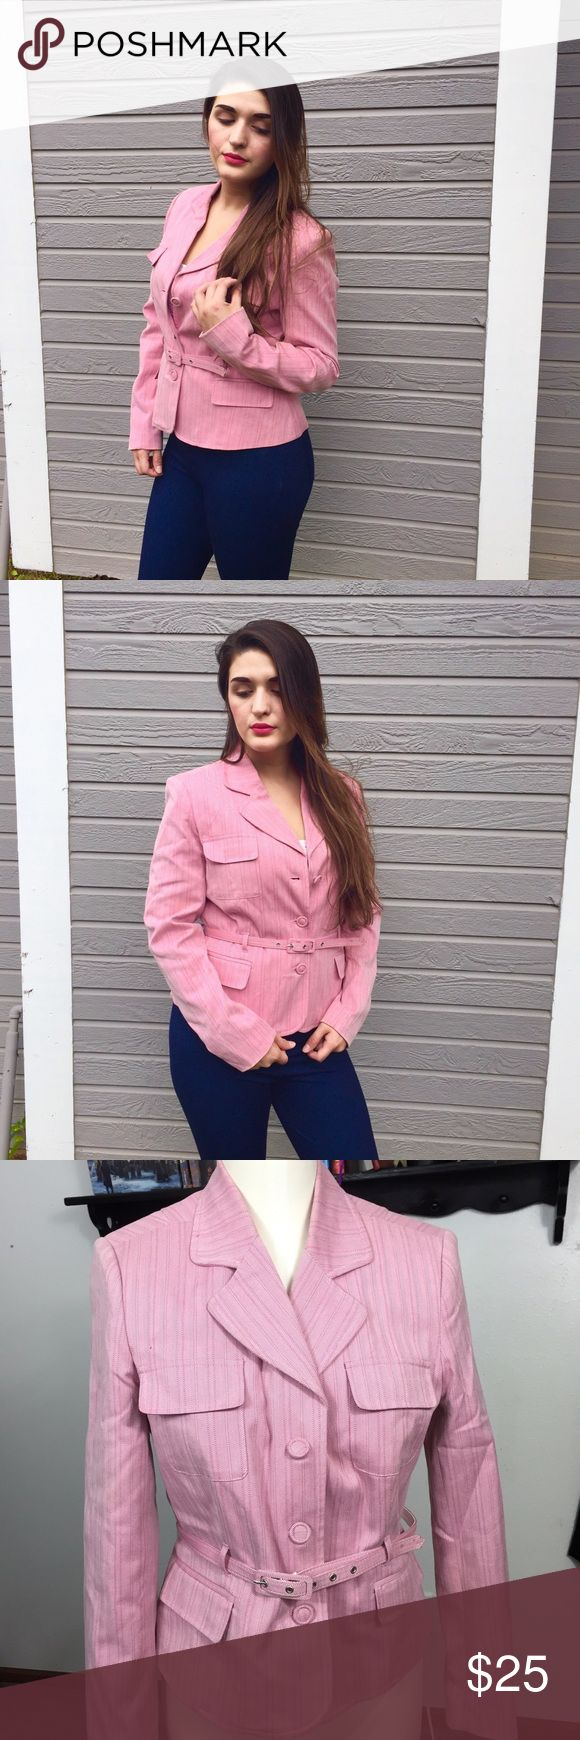 🎁MERONA Pink Safari Jacket/Blazer Used a few times.  In great condition.  Has. Minor stain on the belt.  Barely noticeable Merona Jackets & Coats Utility Jackets